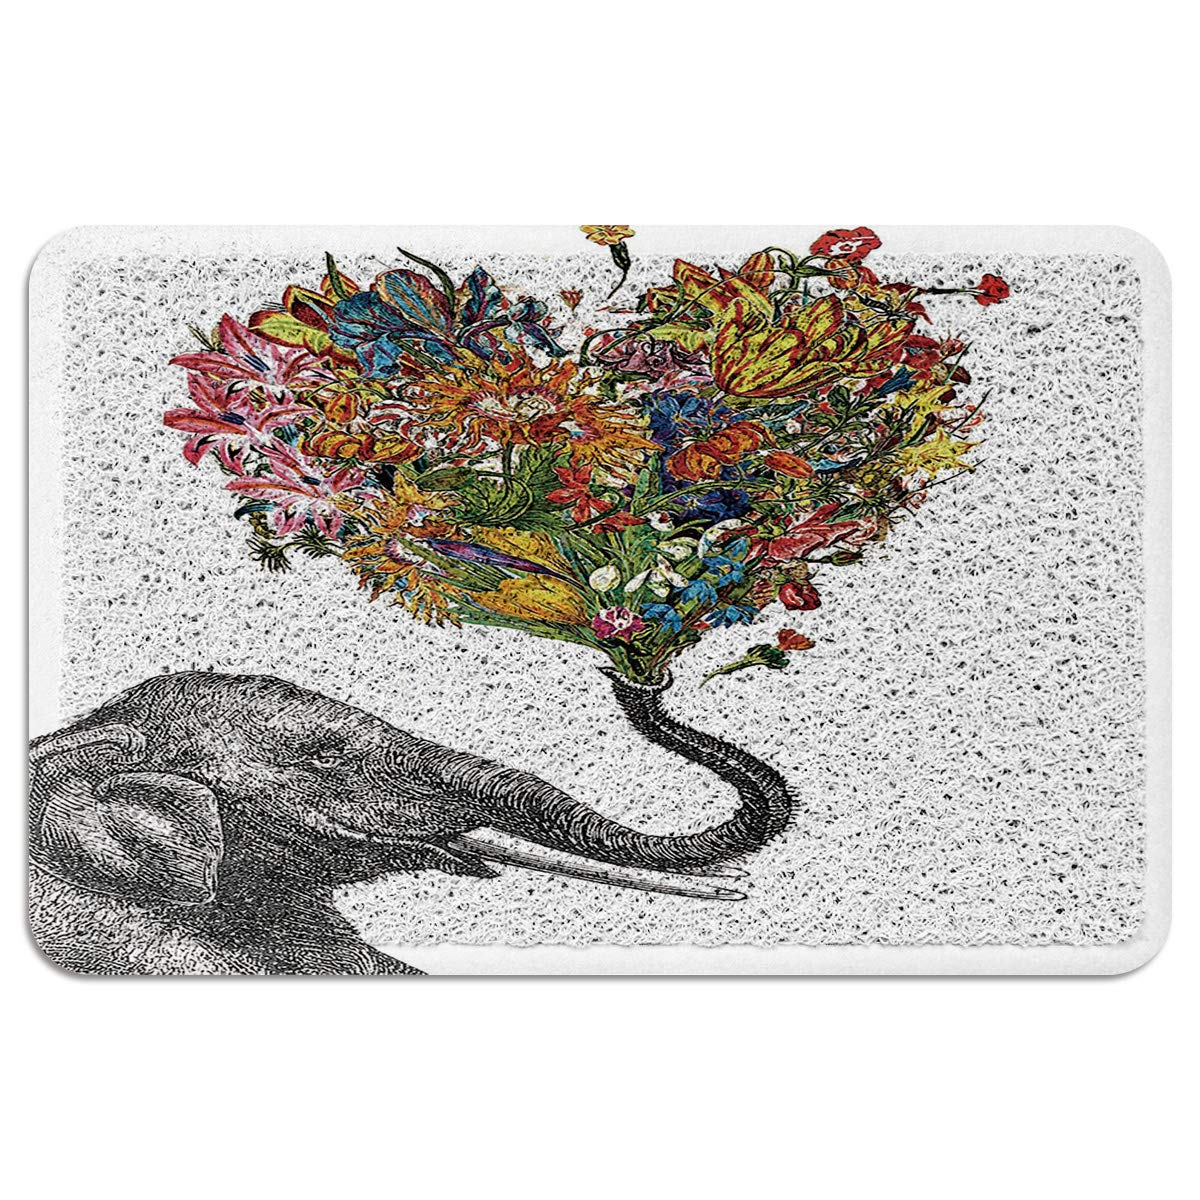 MUSEDAY Indoor/Outdoor Doormat,Elephant Painting Durable Heavy Duty Shoes Scraper Mat, Vintage Elephant with Aztec Floral Easy Clean Rug for Pet Bowl(24''x35'',W x L)